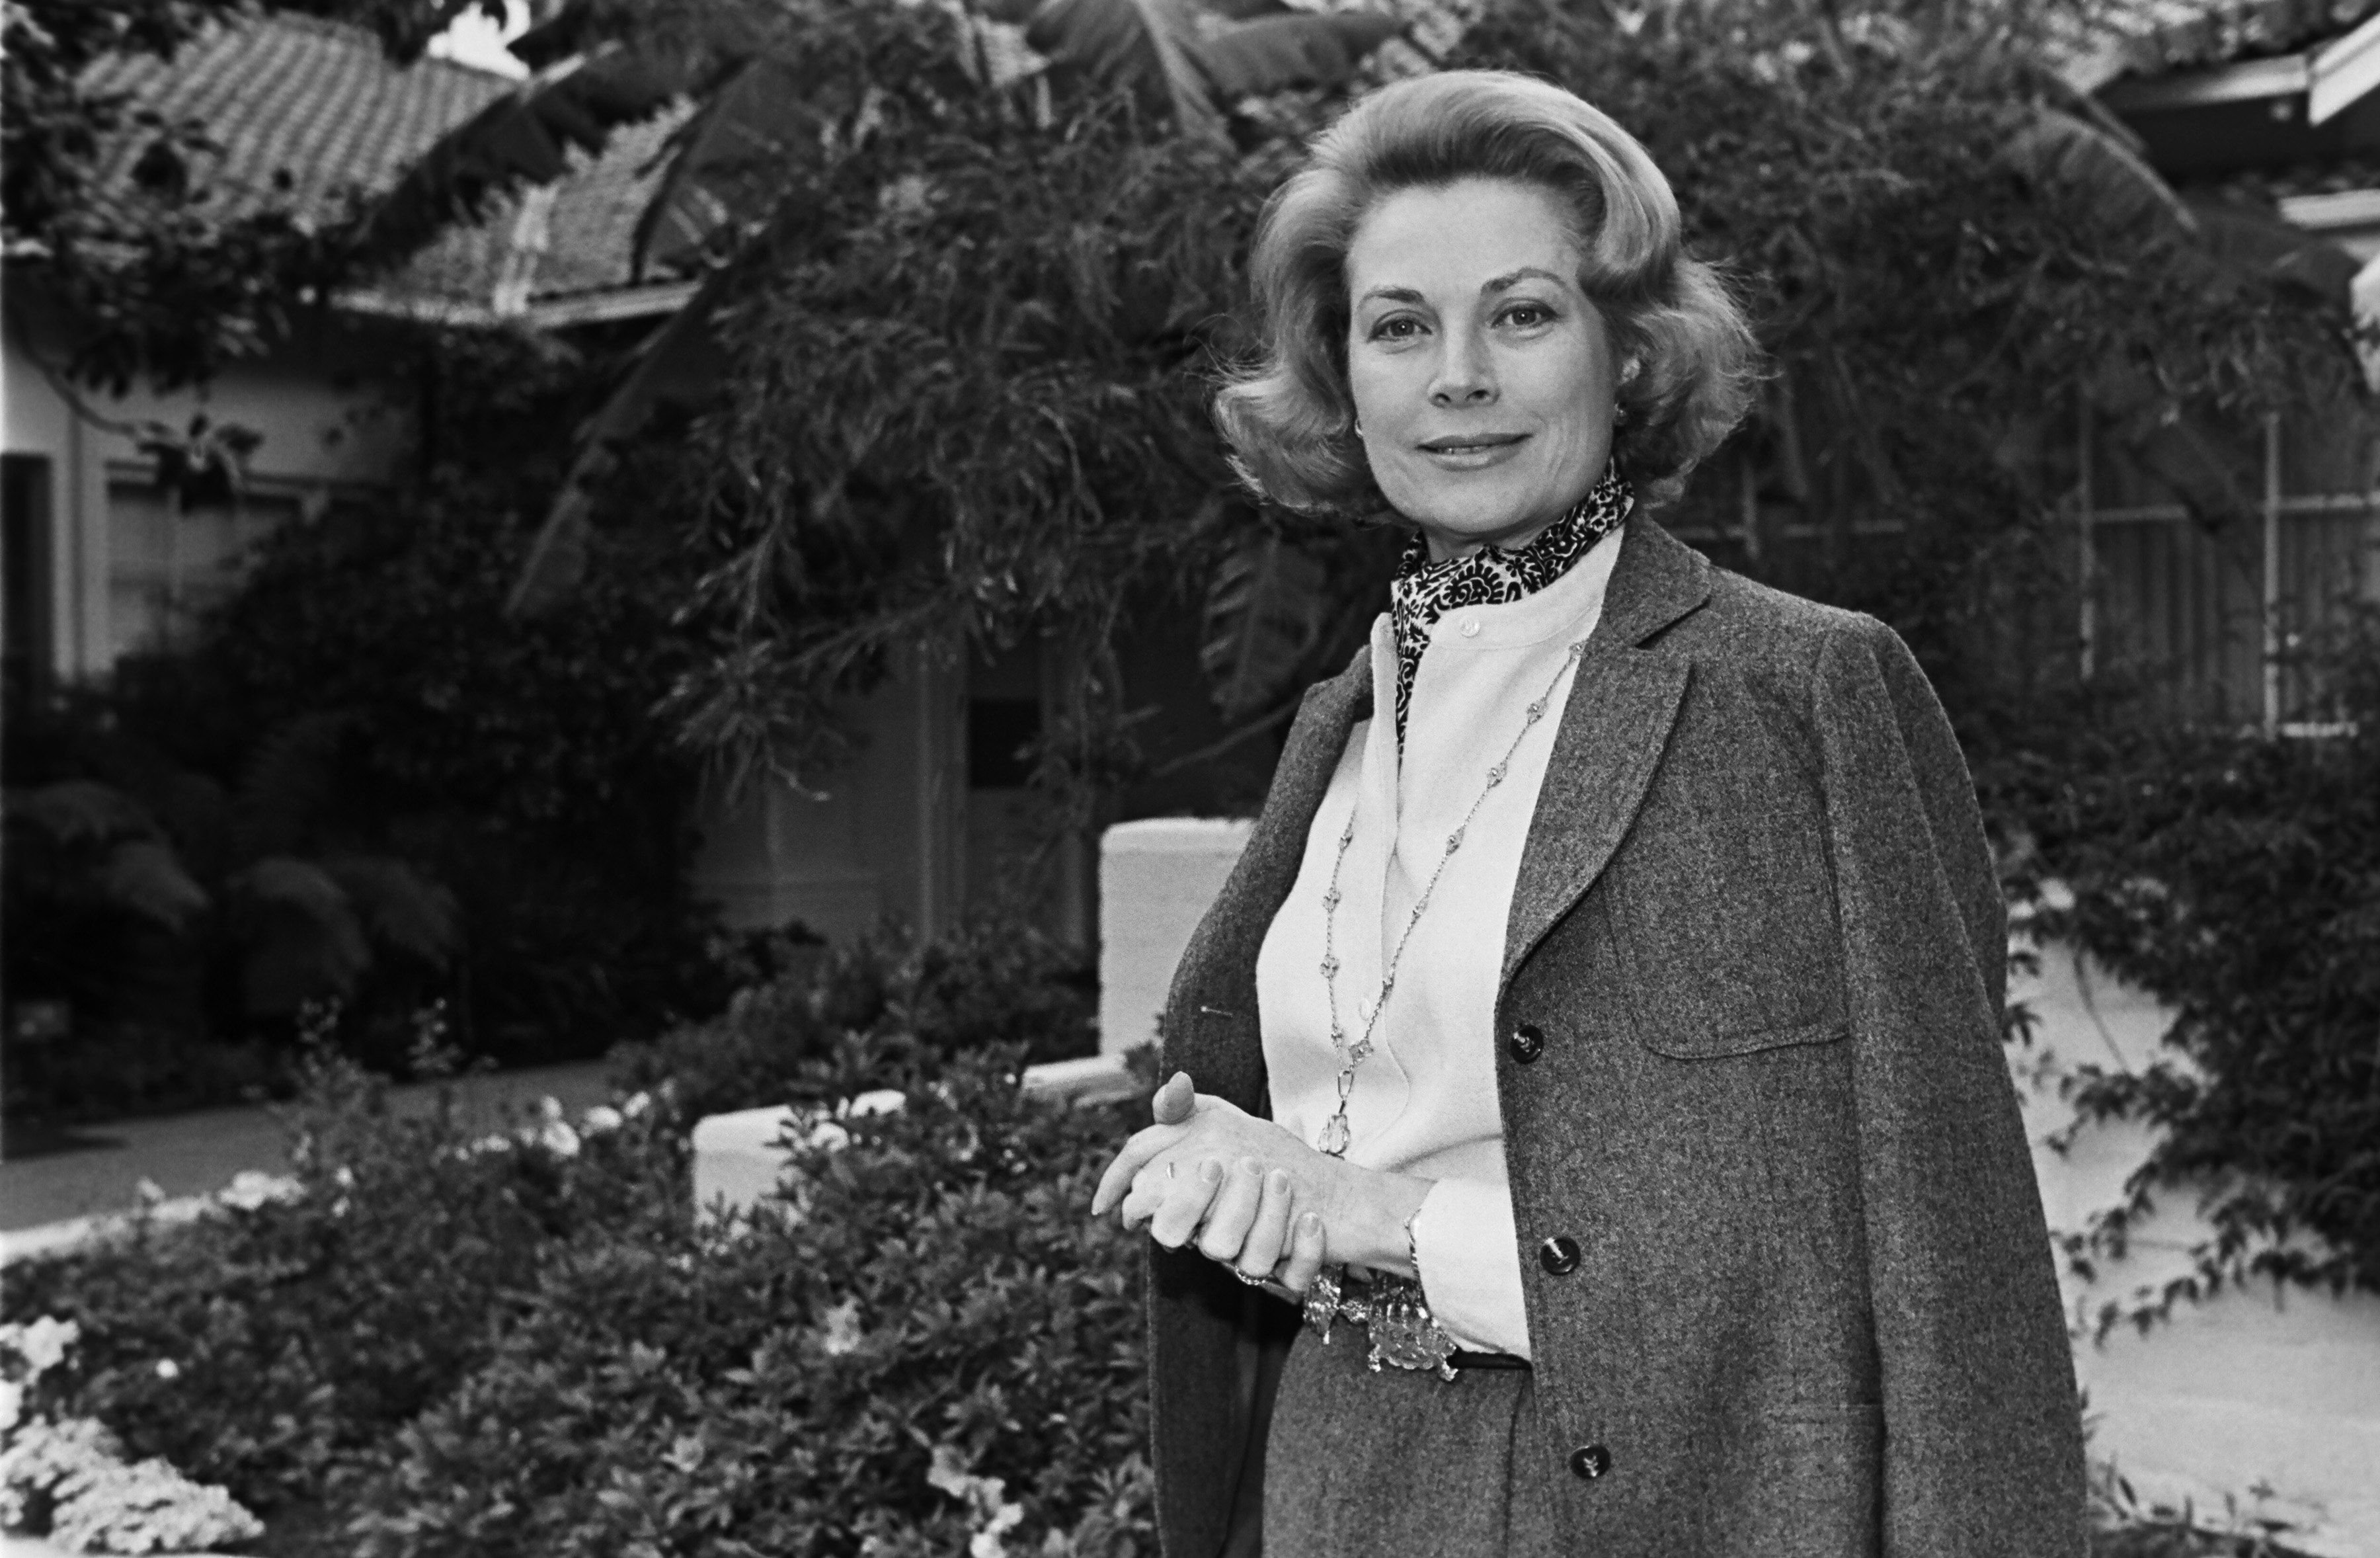 Princess Grace of Monaco in Bel Air, California in 1978 | Source: Getty Images